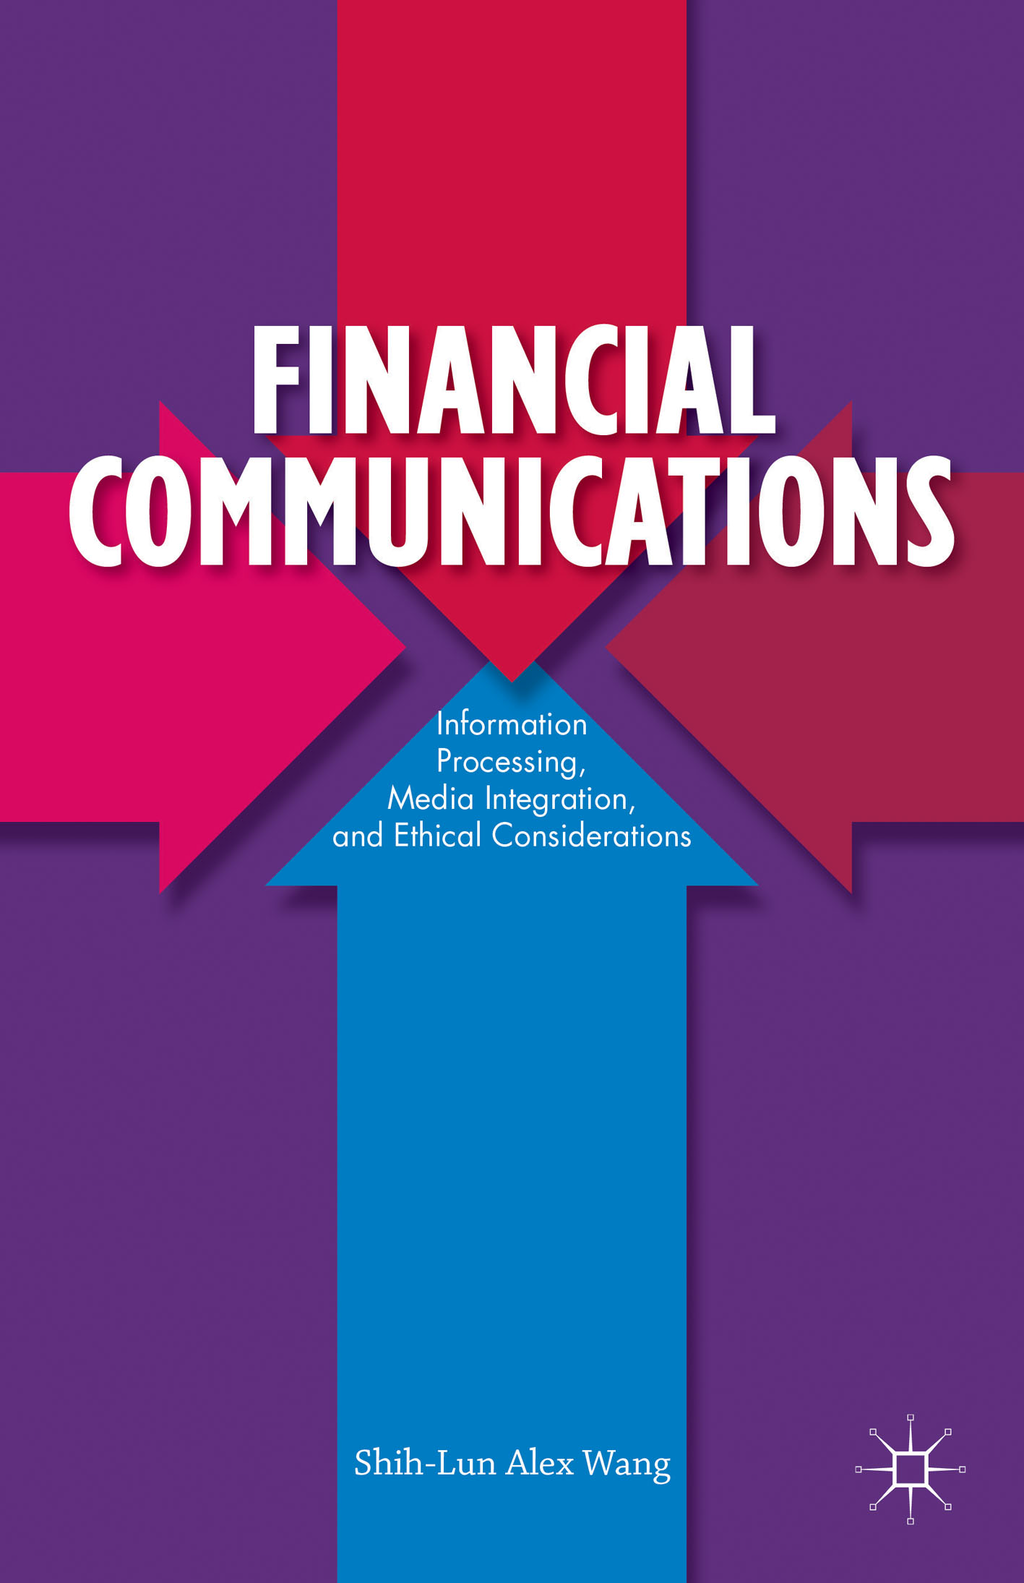 Financial Communications Information Processing,  Media Integration,  and Ethical Considerations